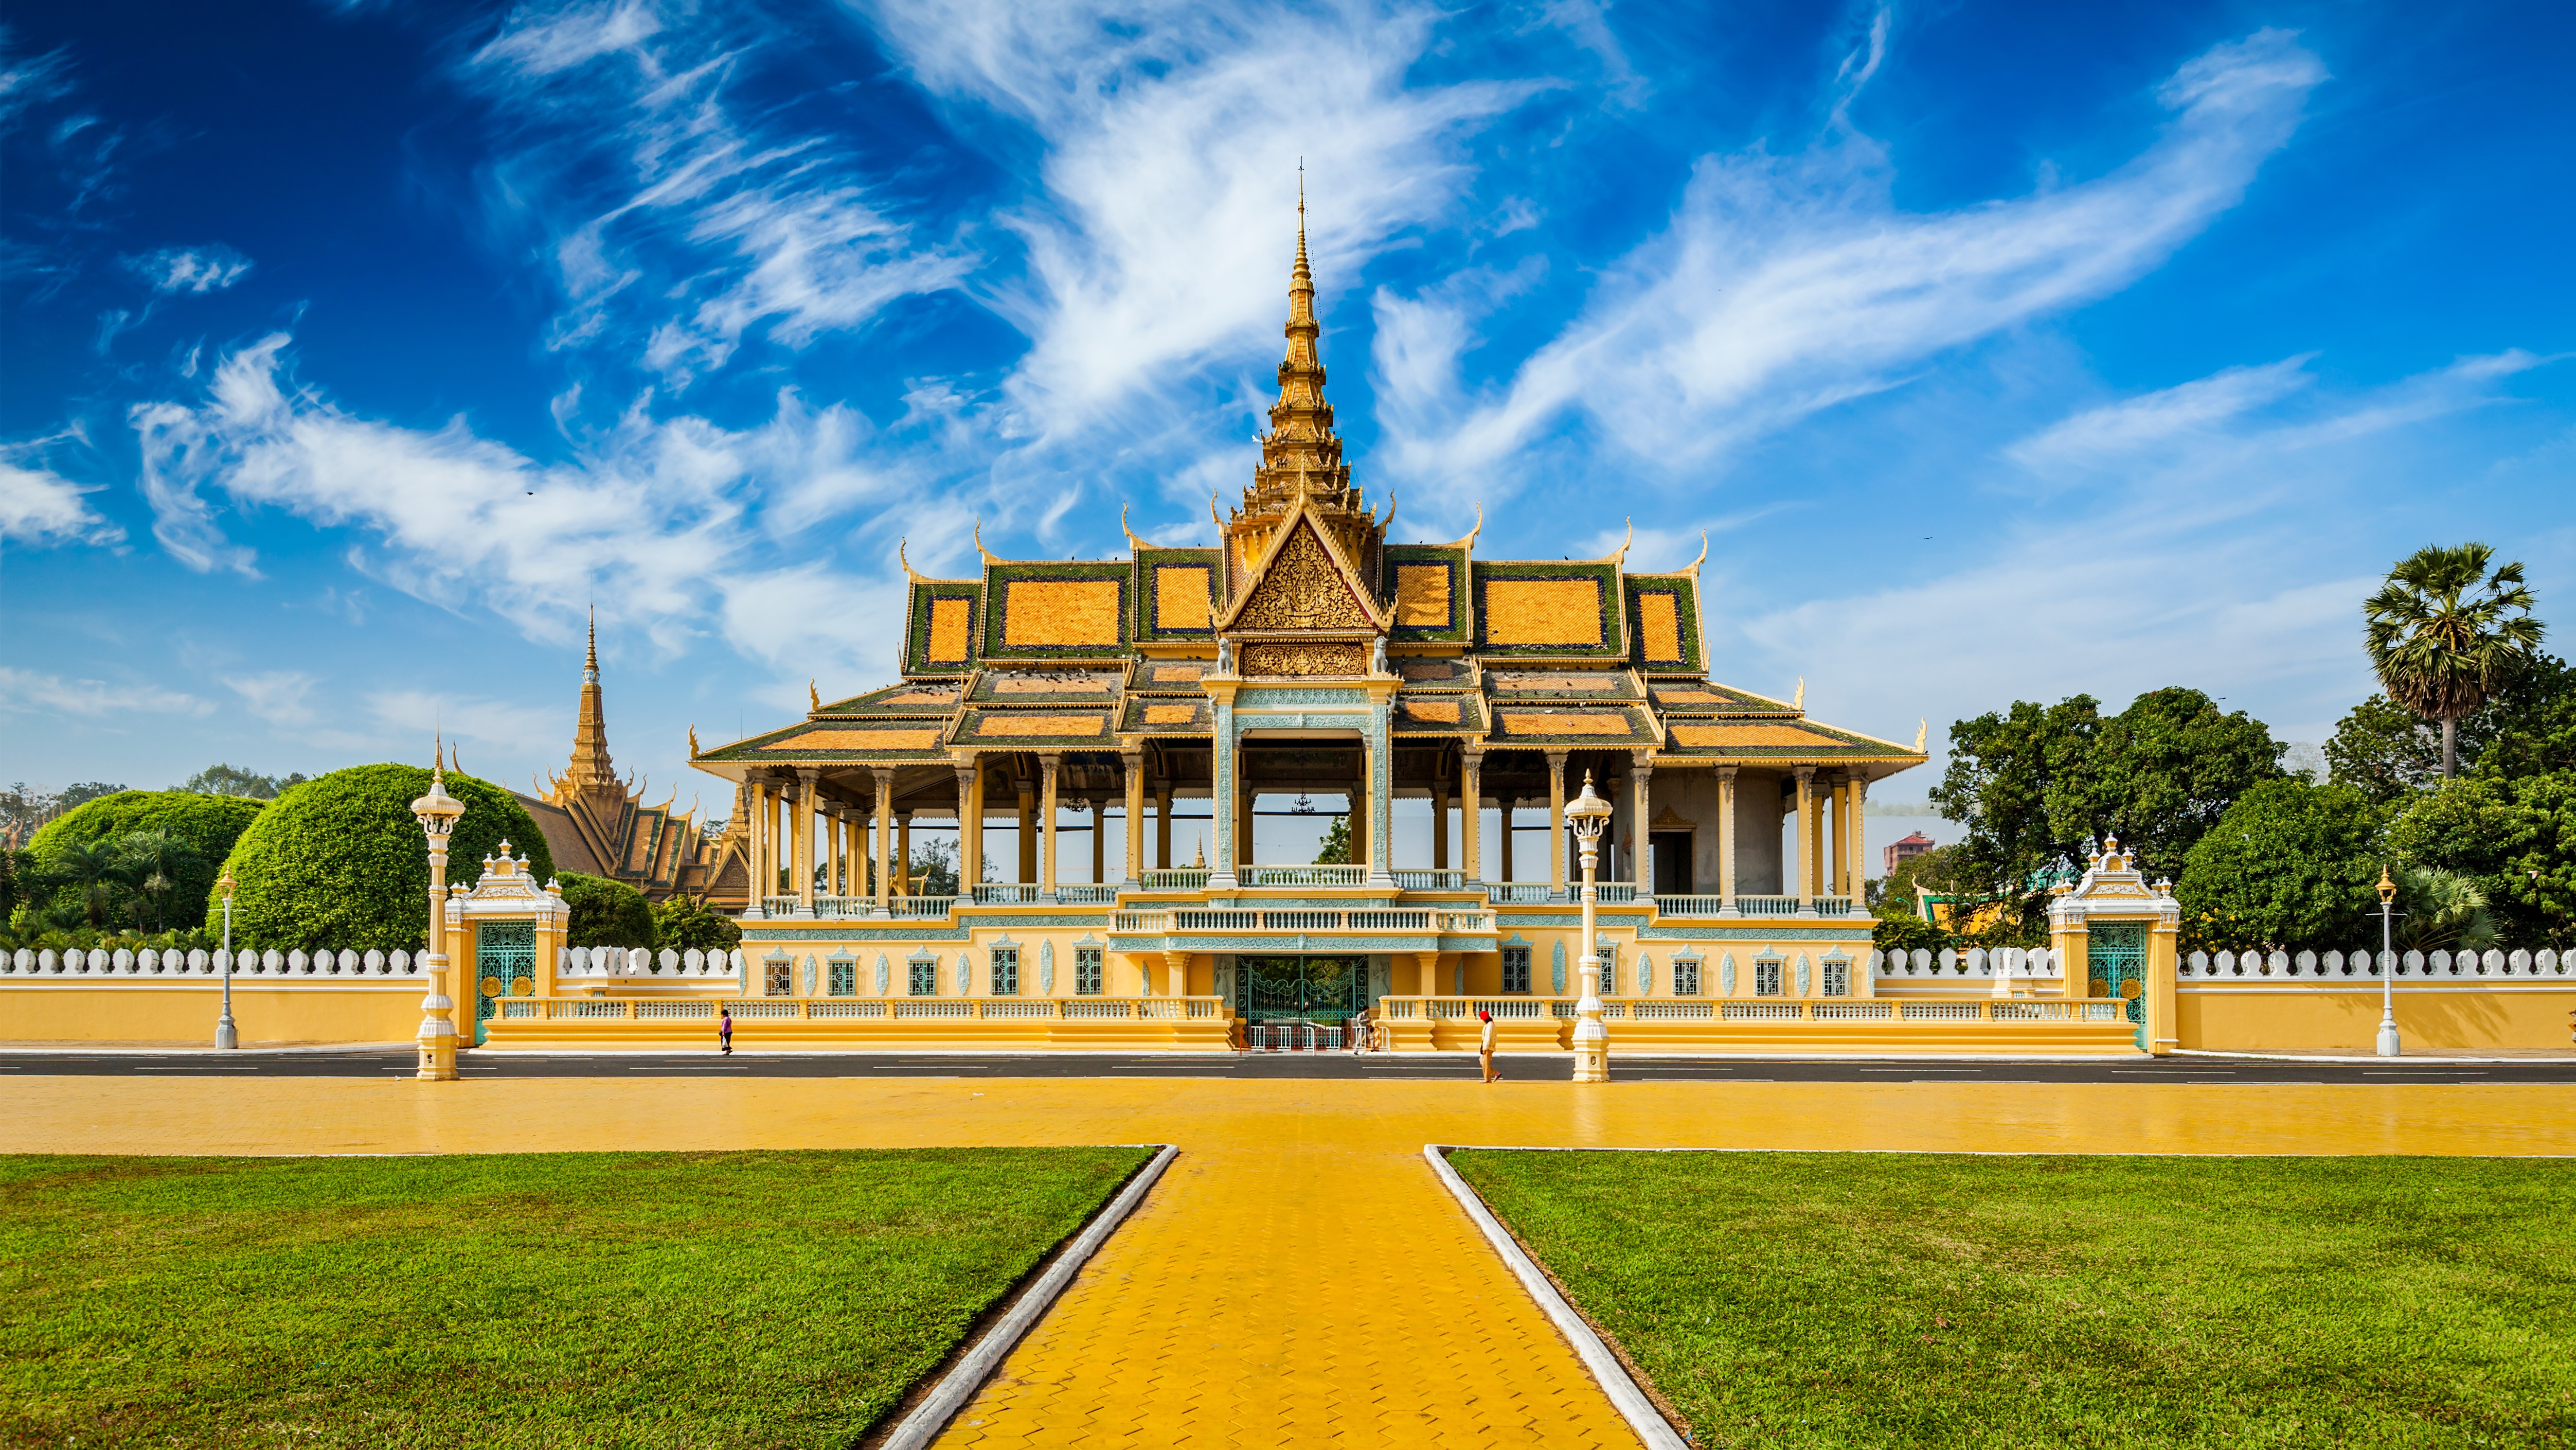 The Atlas Logistic Network is linking Phnom Penh, Cambodia to the world 1